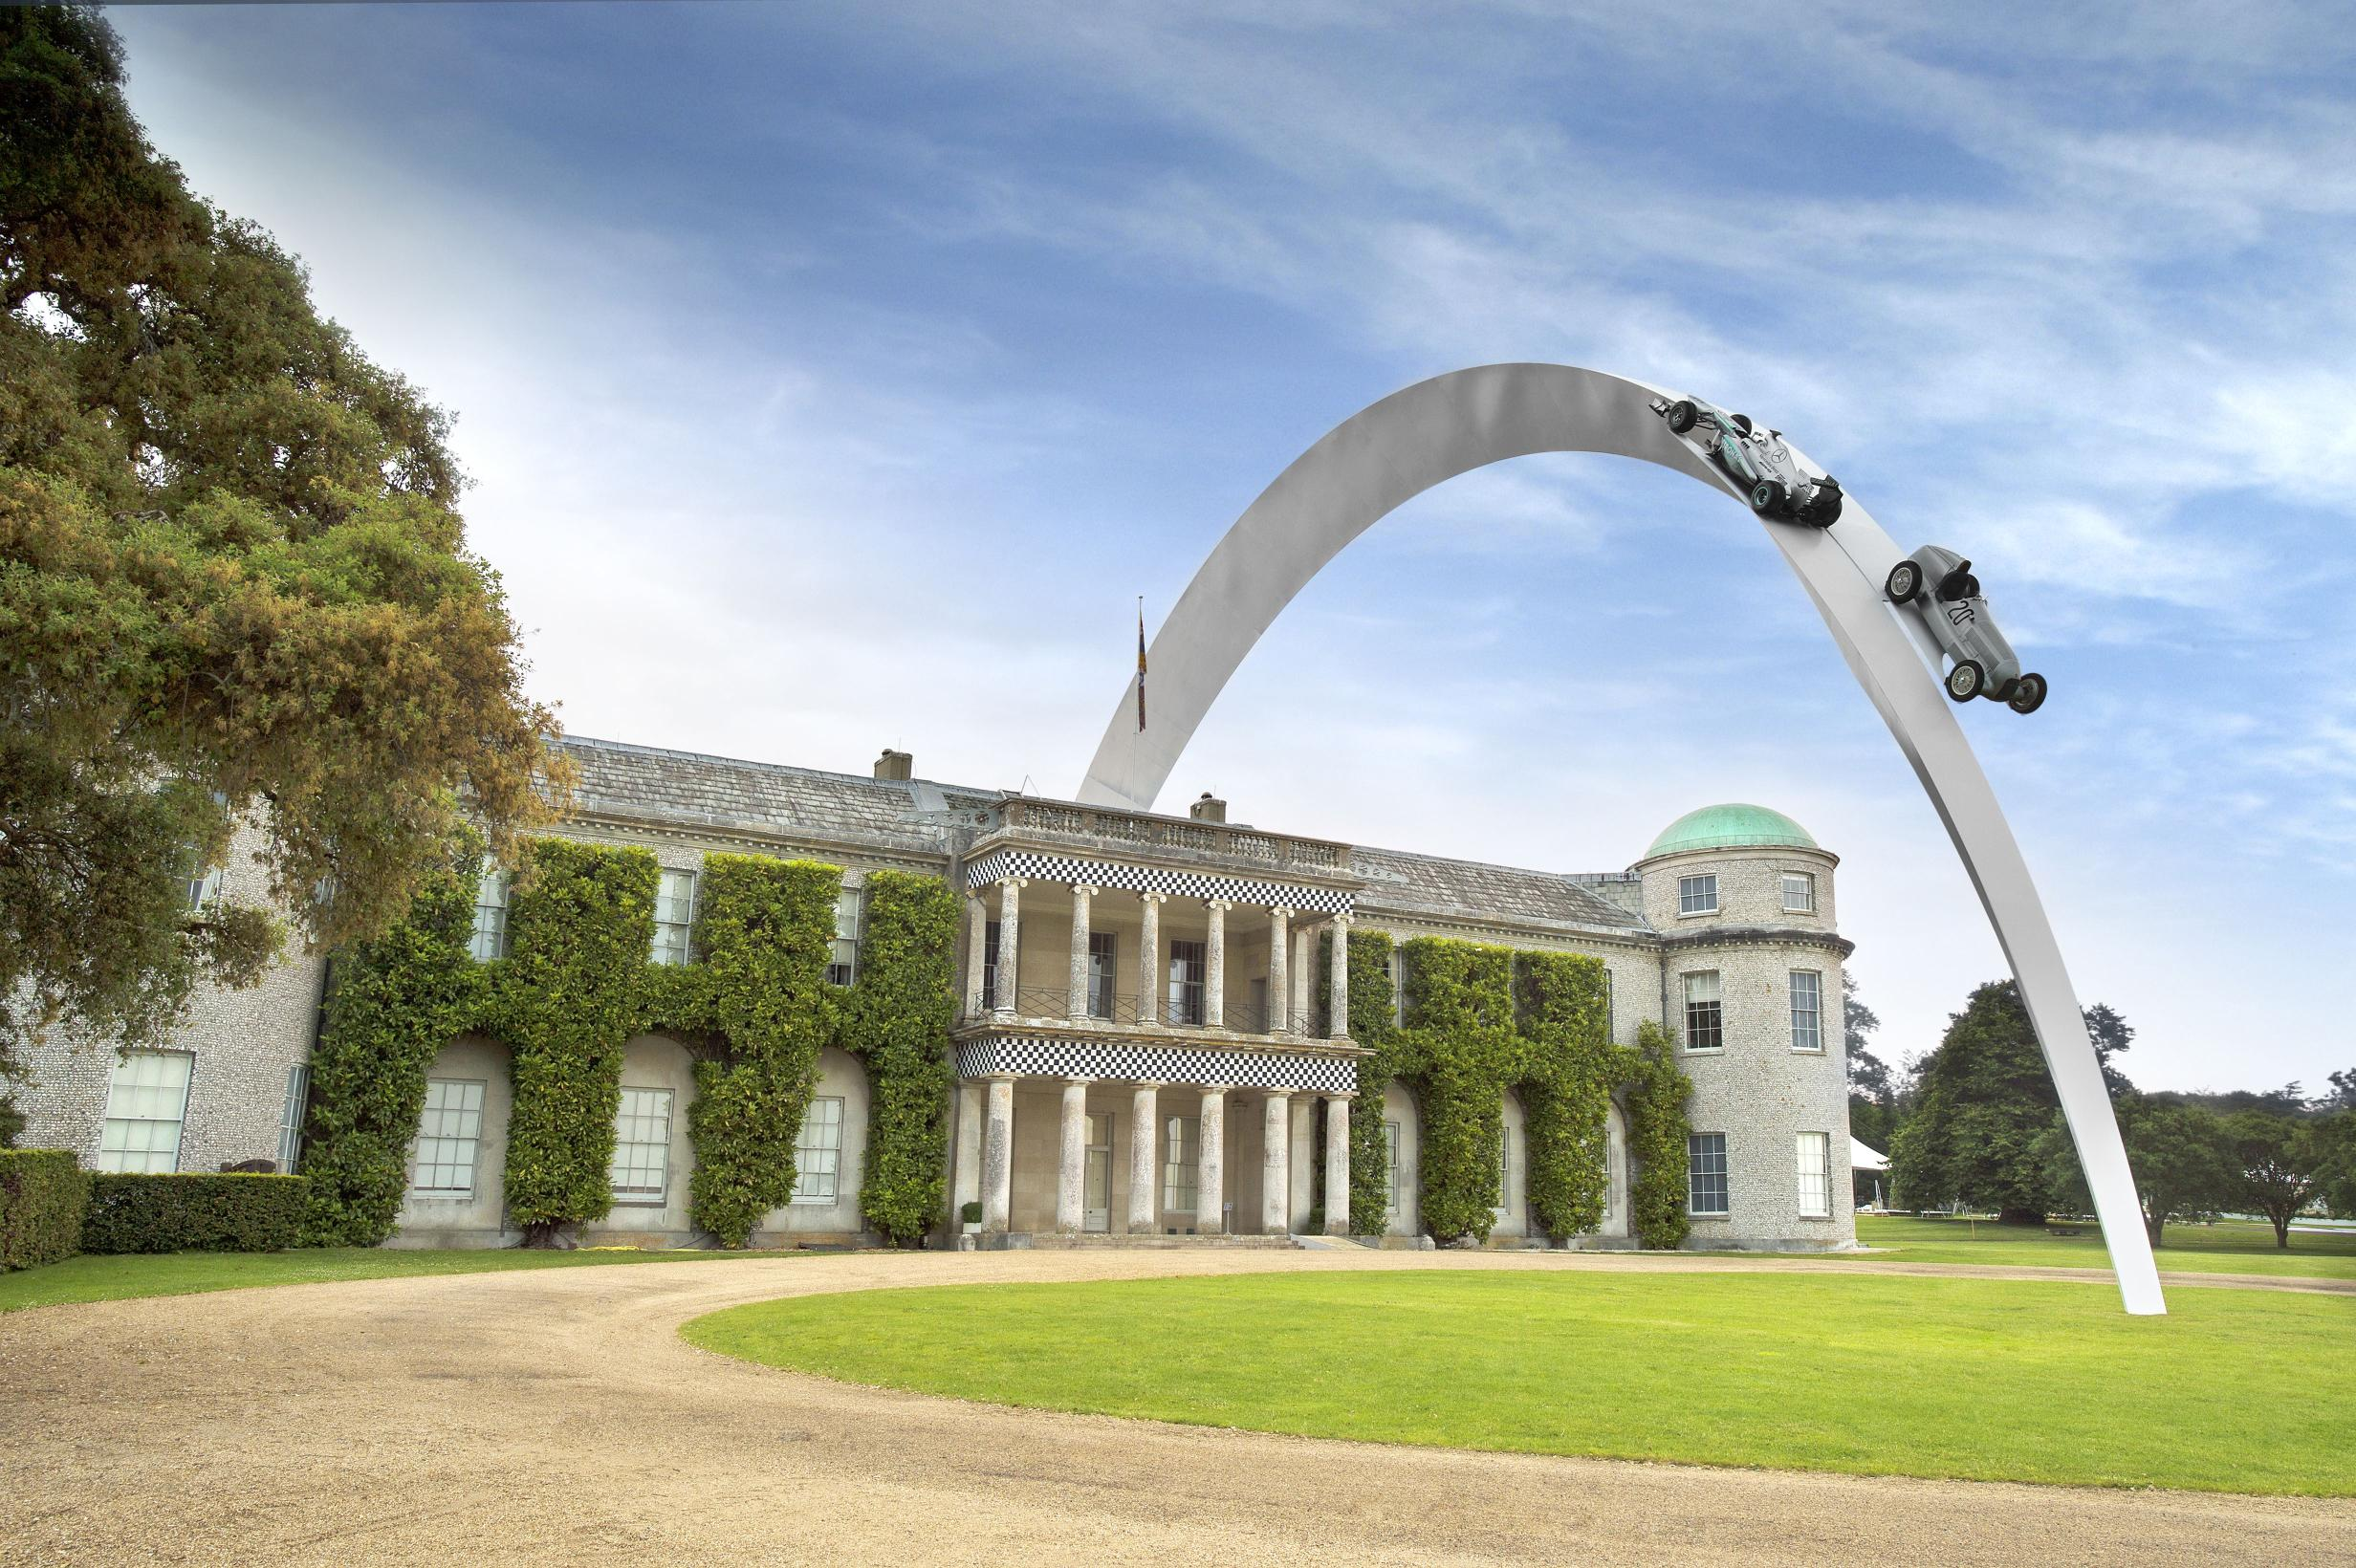 2014 Goodwood Festival Of Speed Central Feature Honors ...